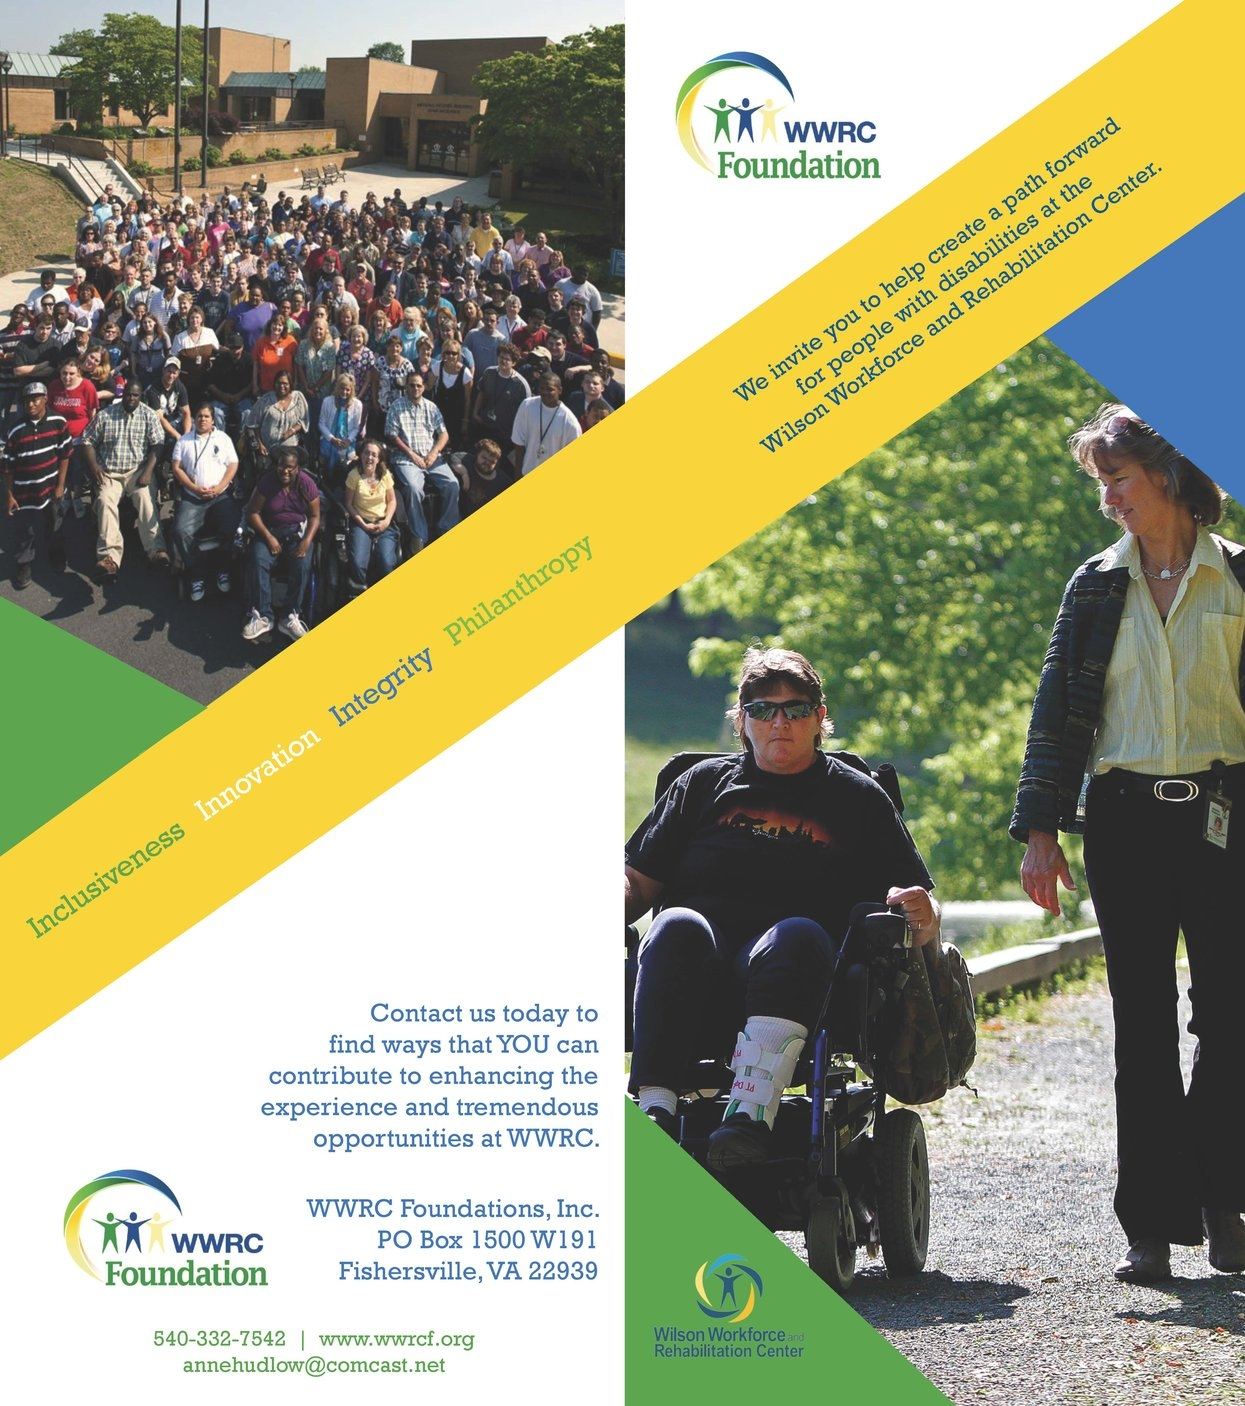 WWRCF Brochure - Read more about the Foundation's work with WWRC.